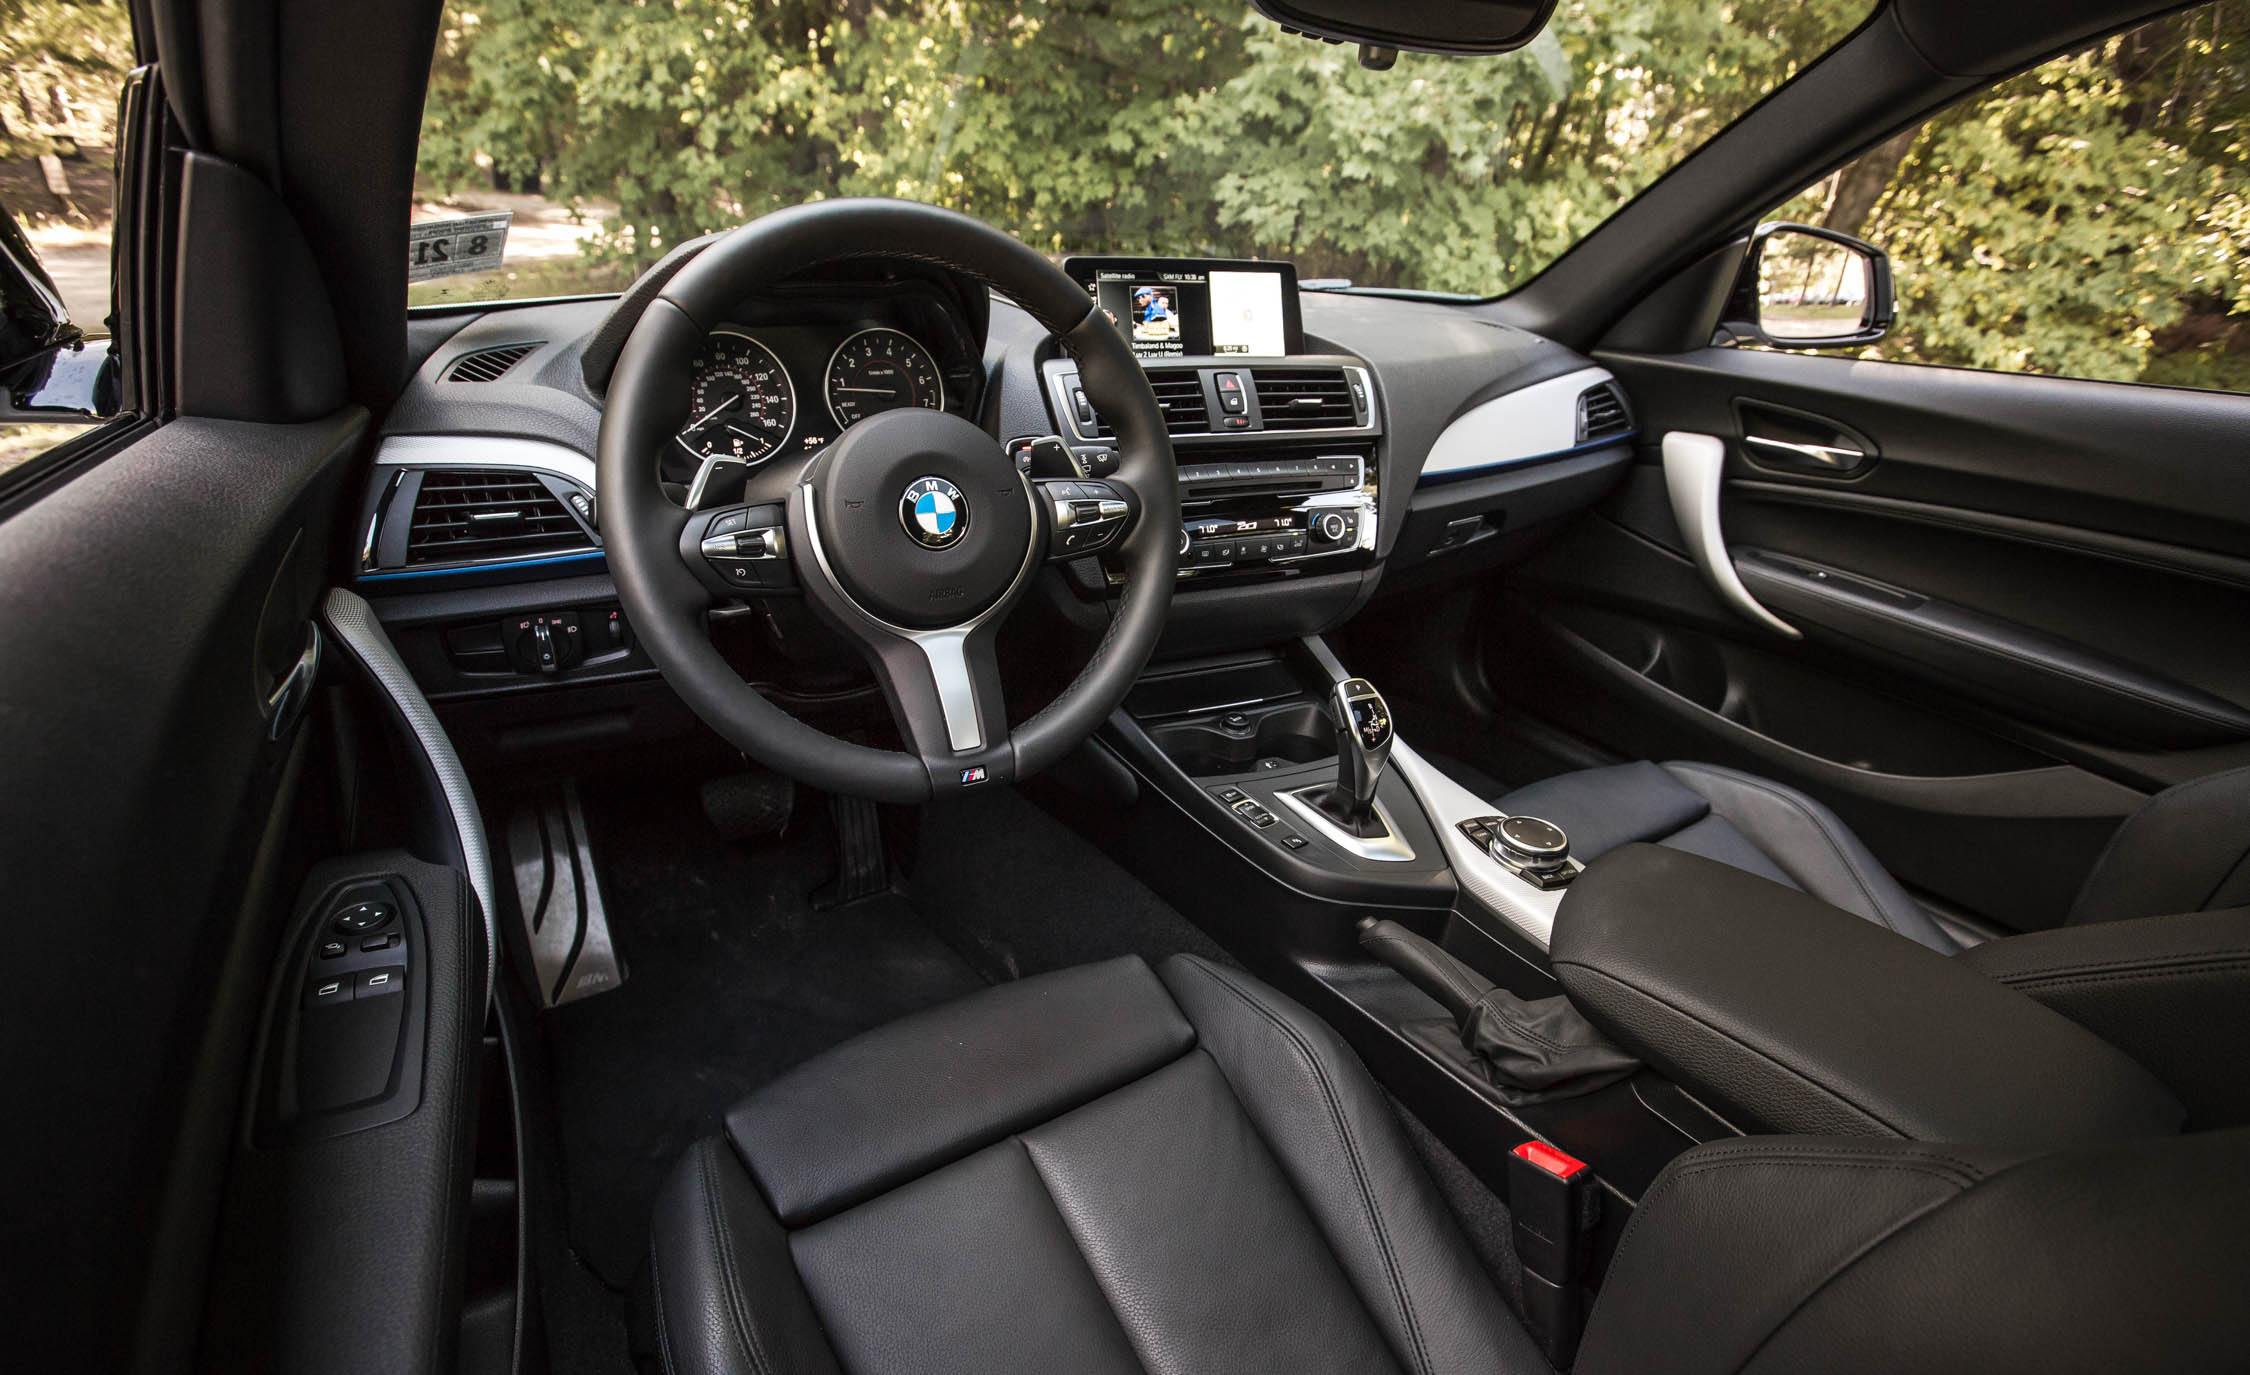 2017 BMW M240i Coupe Automatic Interior Driver Cockpit And Dash (Photo 16 of 36)